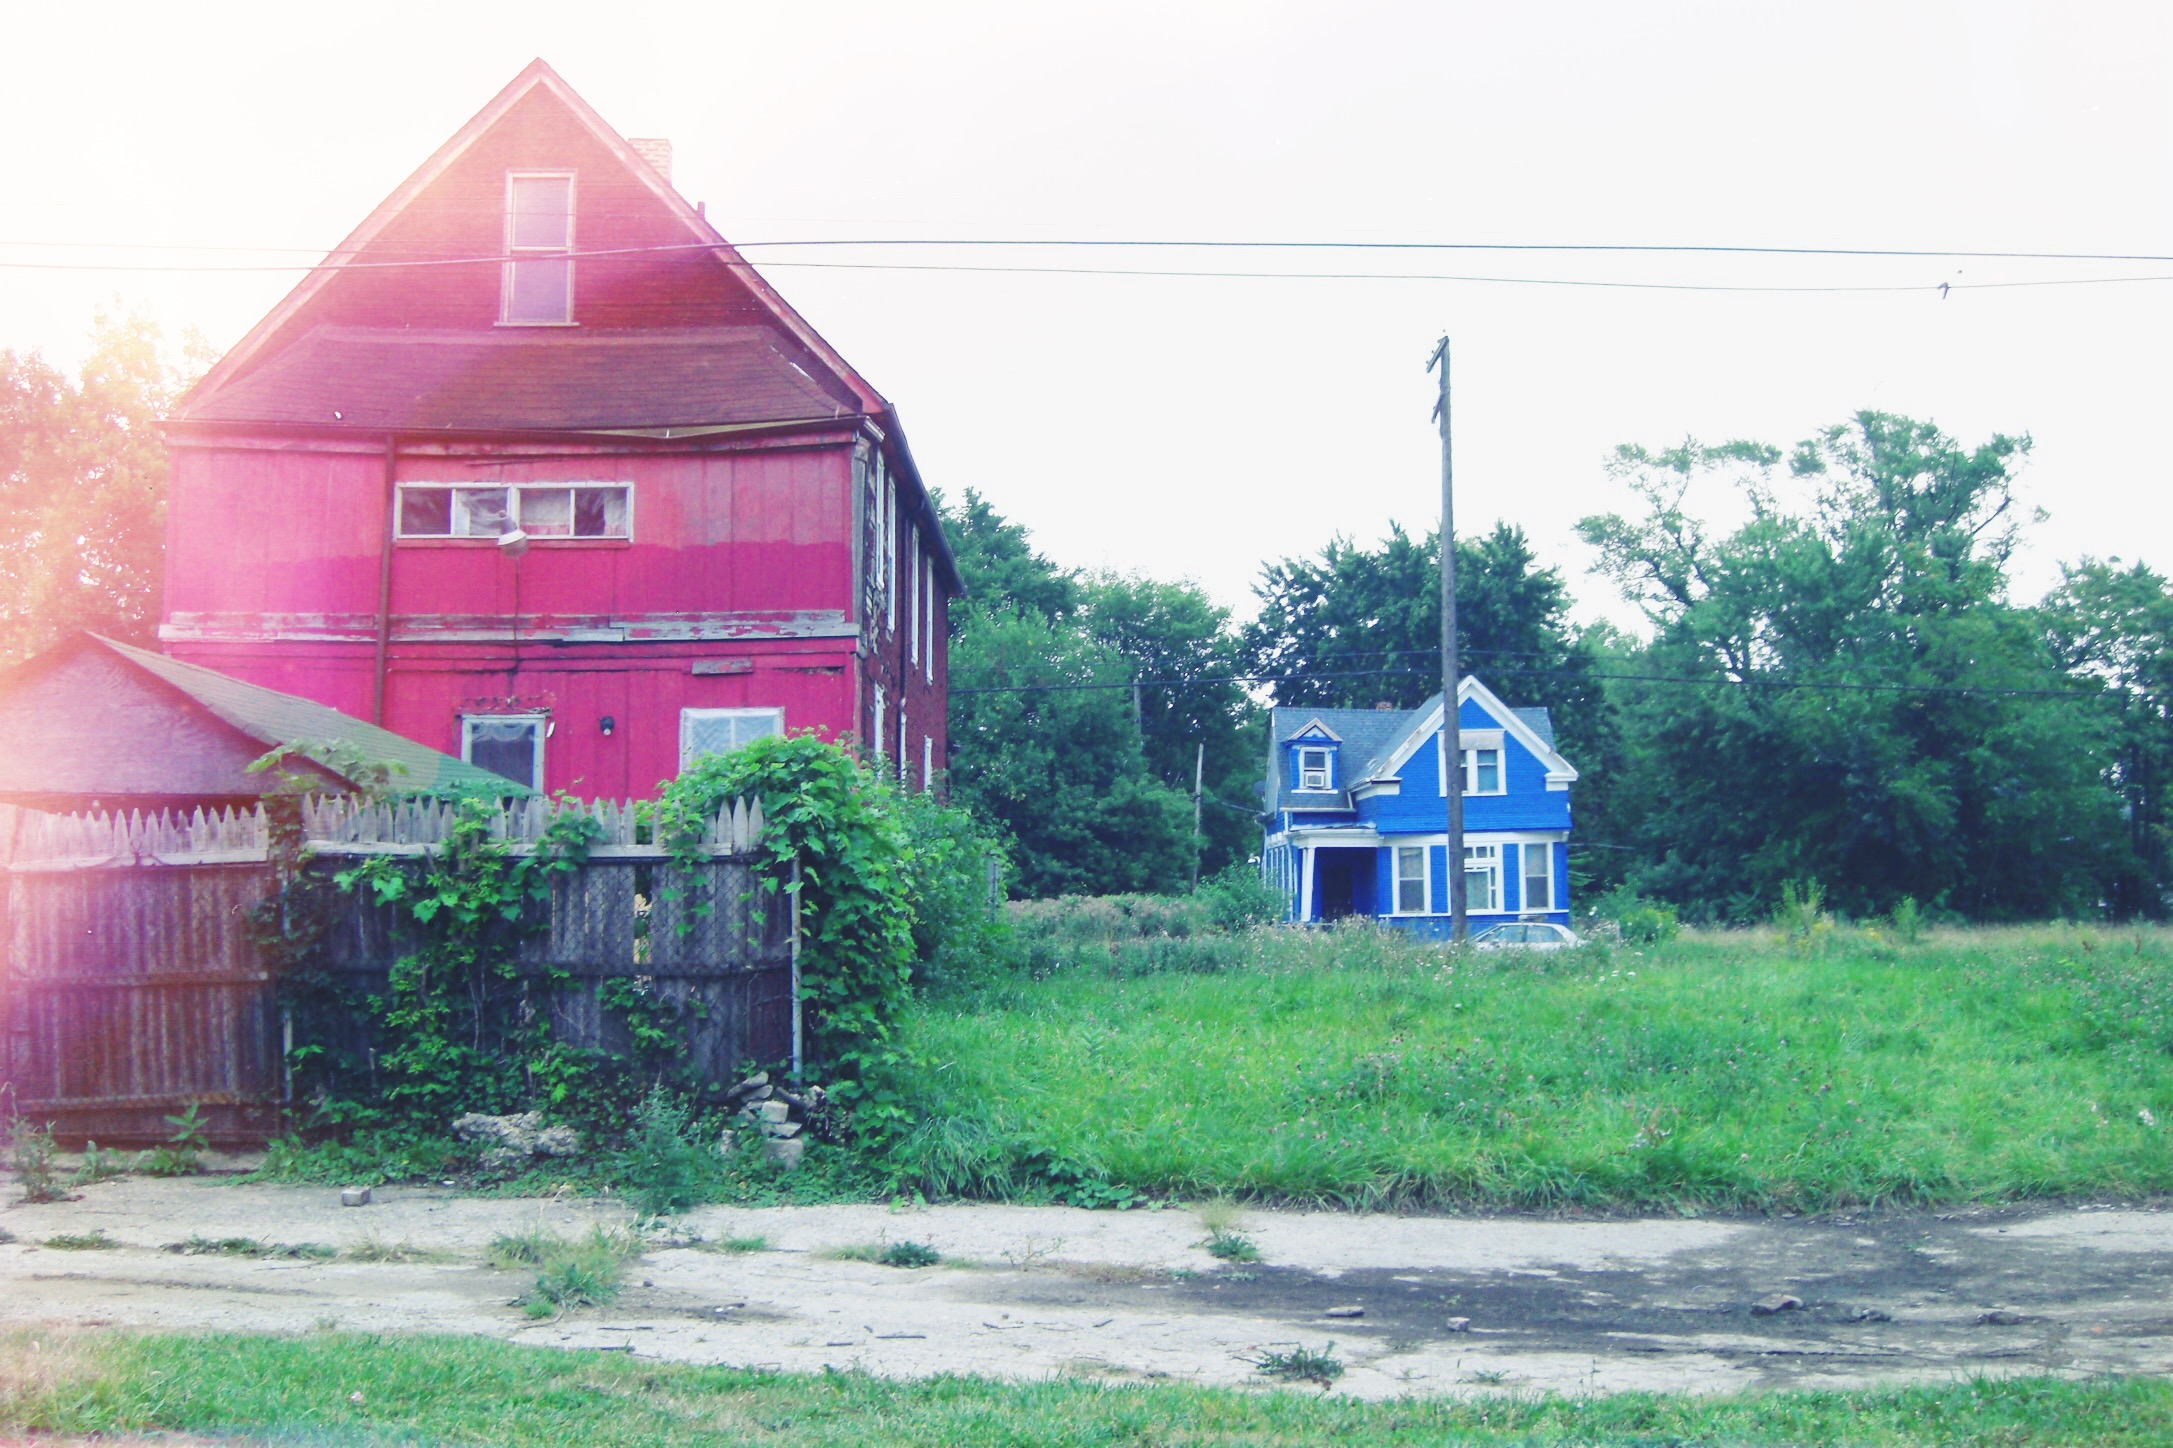 Two of a few remaining houses occupying an East Detroit residential block.